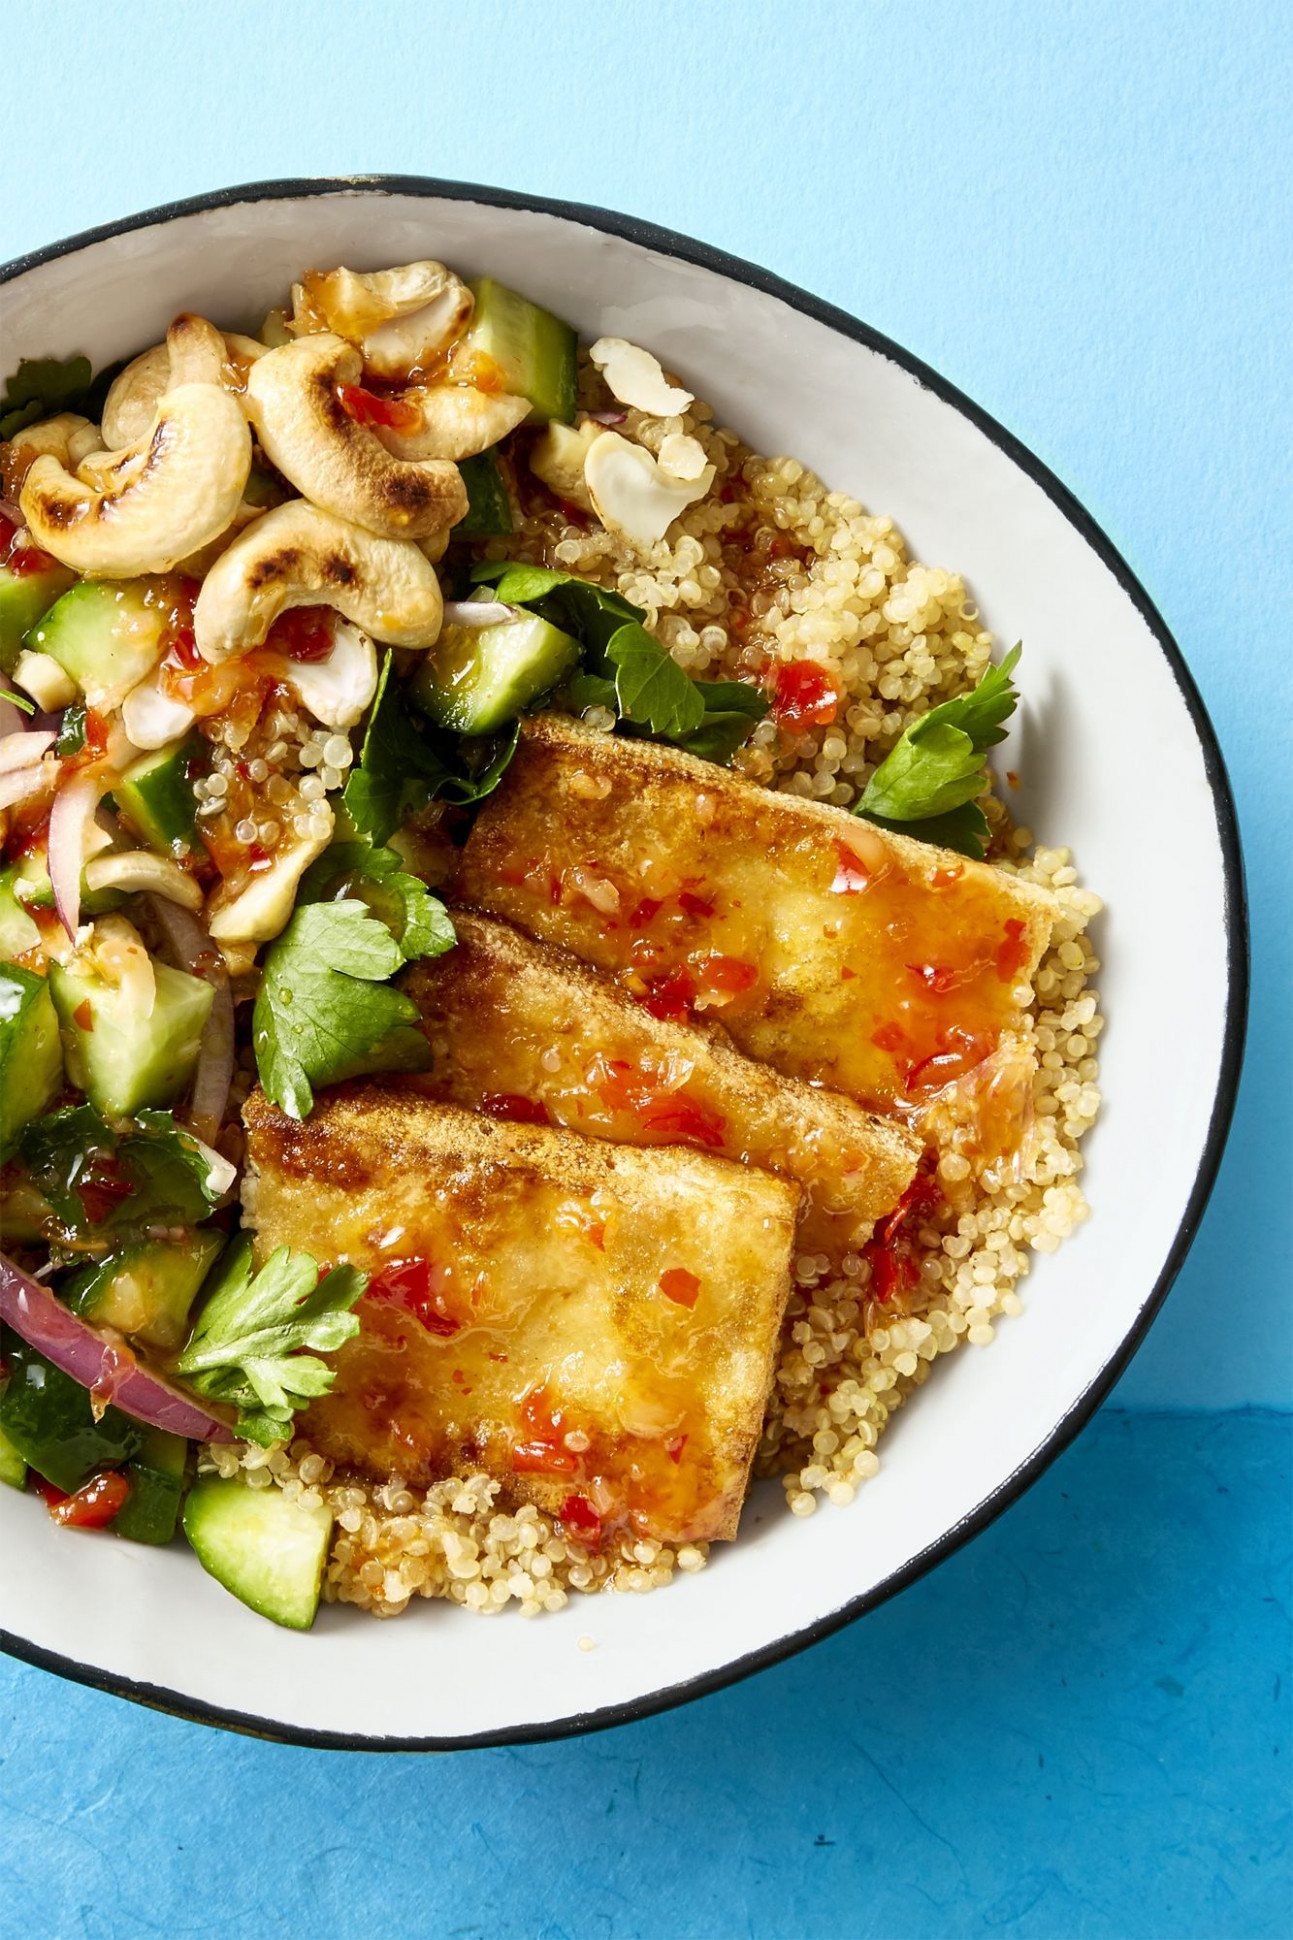 13 Best Tofu Recipes - Easy Vegetarian Recipes With Tofu - tofu recipes dinner